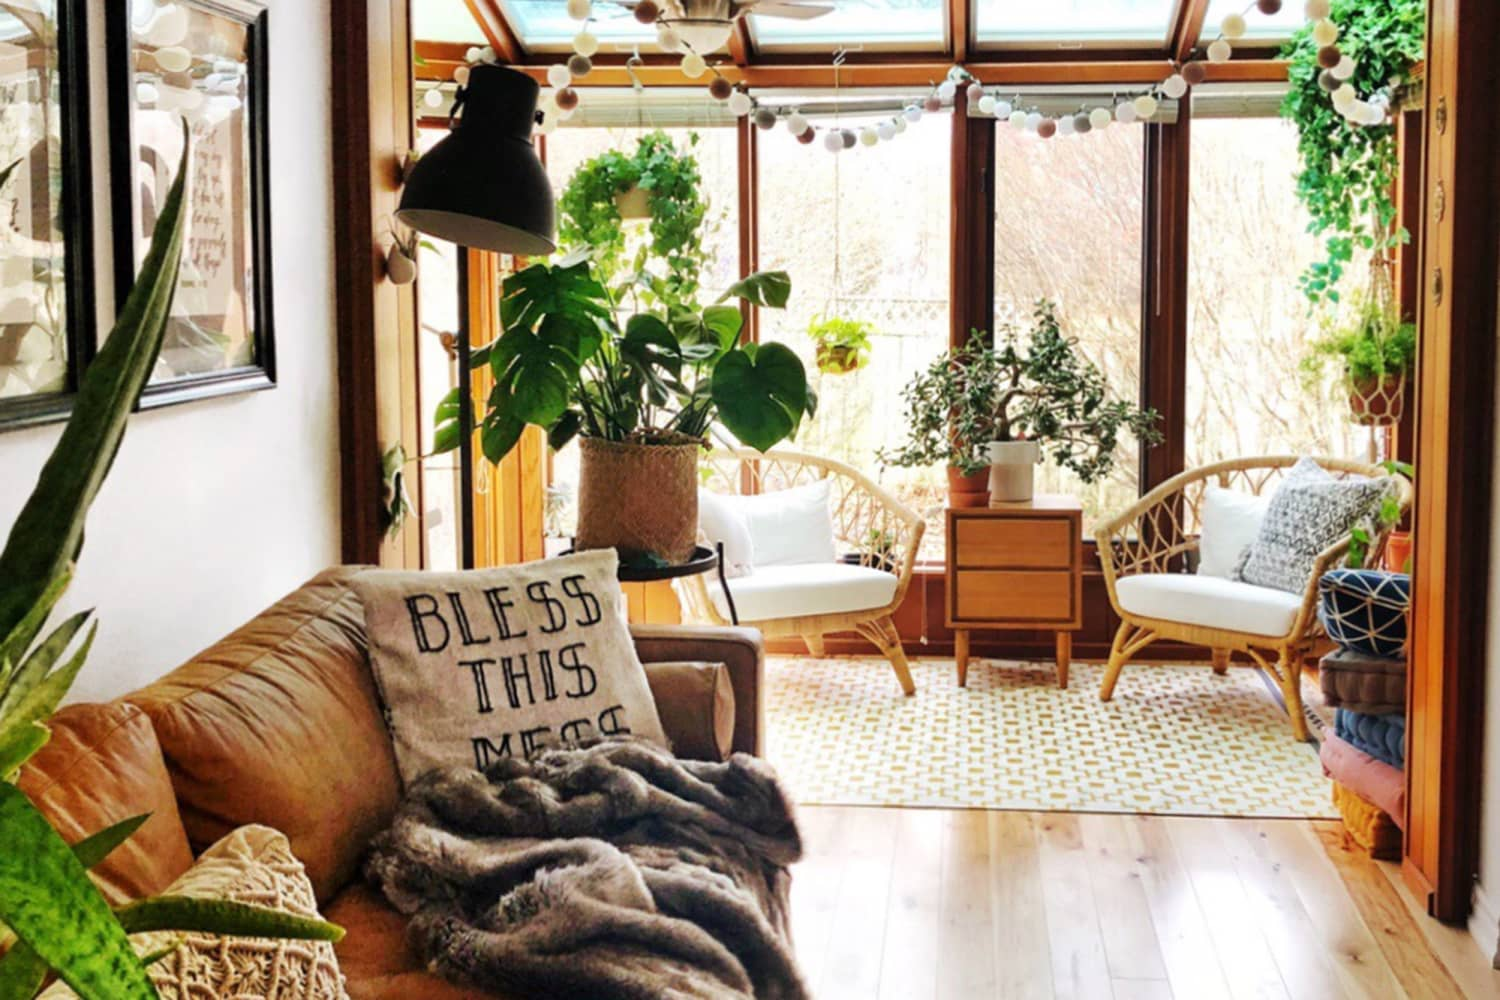 This Bright Boho House Has 75 House Plants… All With Their Own Names